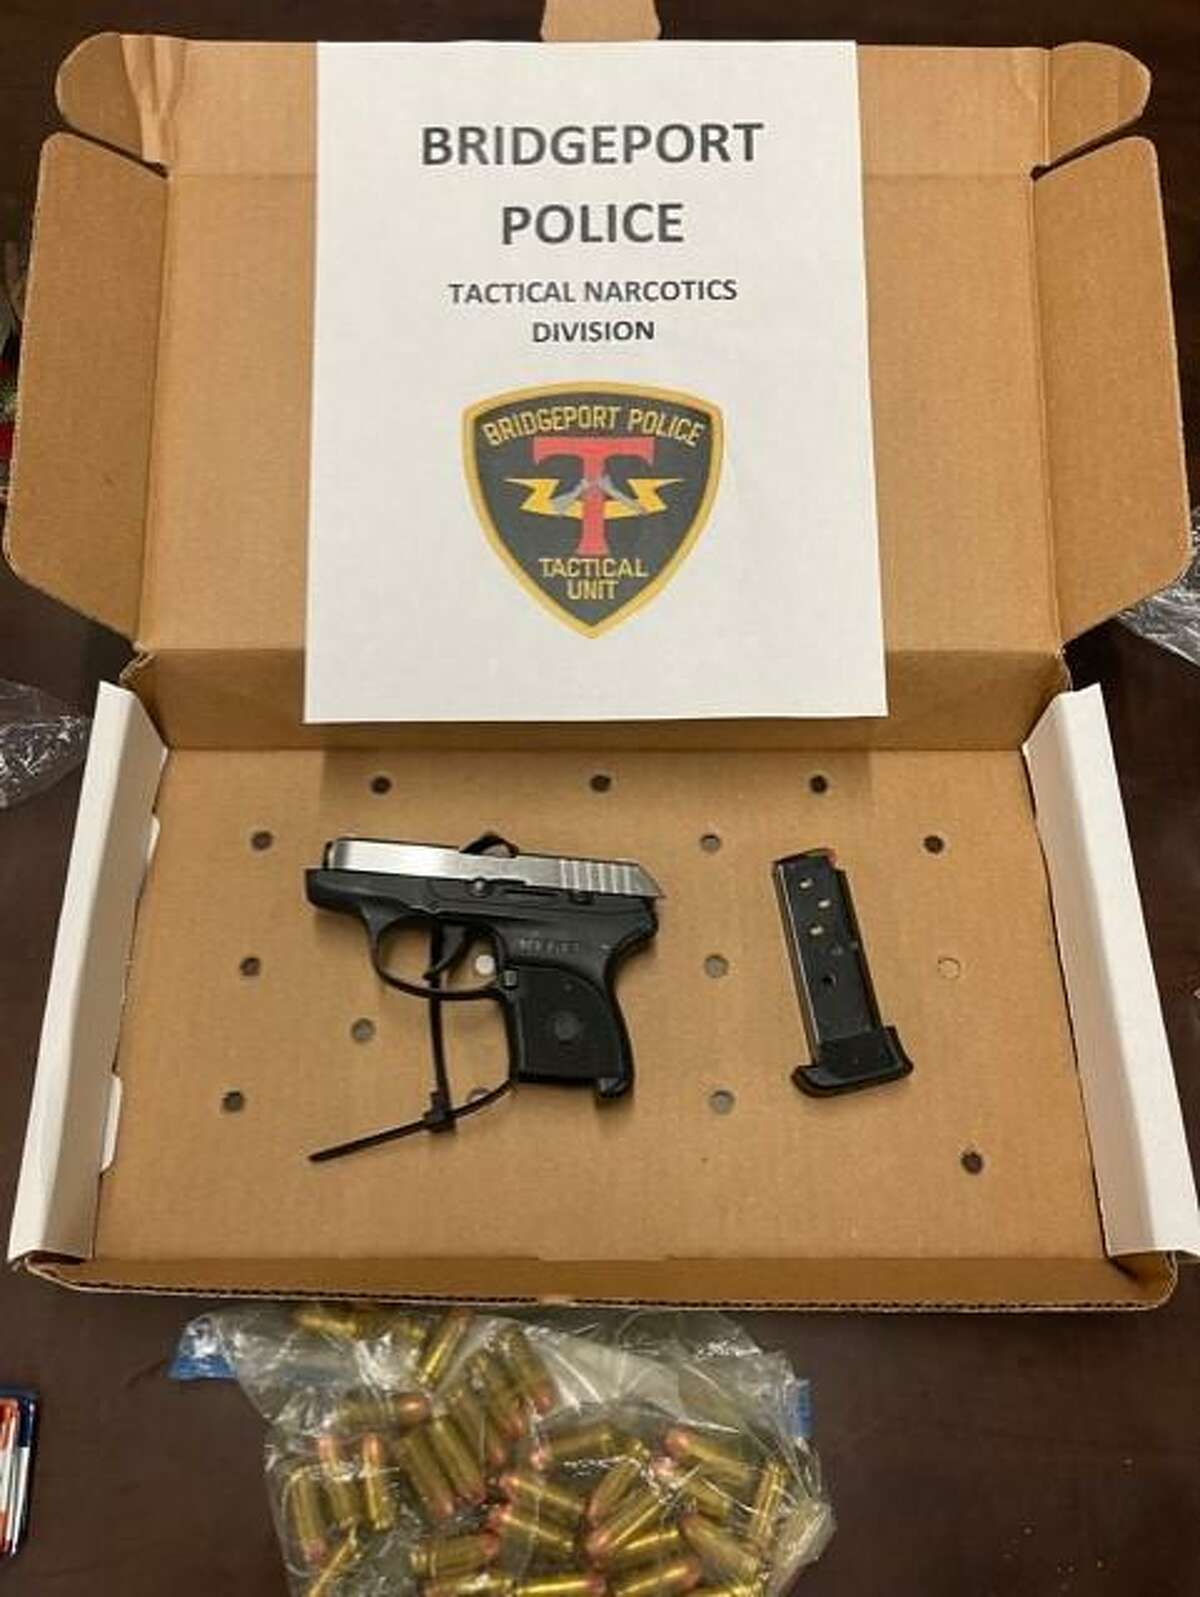 Investigators seized crack cocaine, powdered cocaine, heroin with fentanyl, ecstasy, Xanax, marijuana, digital scales, a .38 caliber handgun, several rounds of ammunition and $1,914, police said.